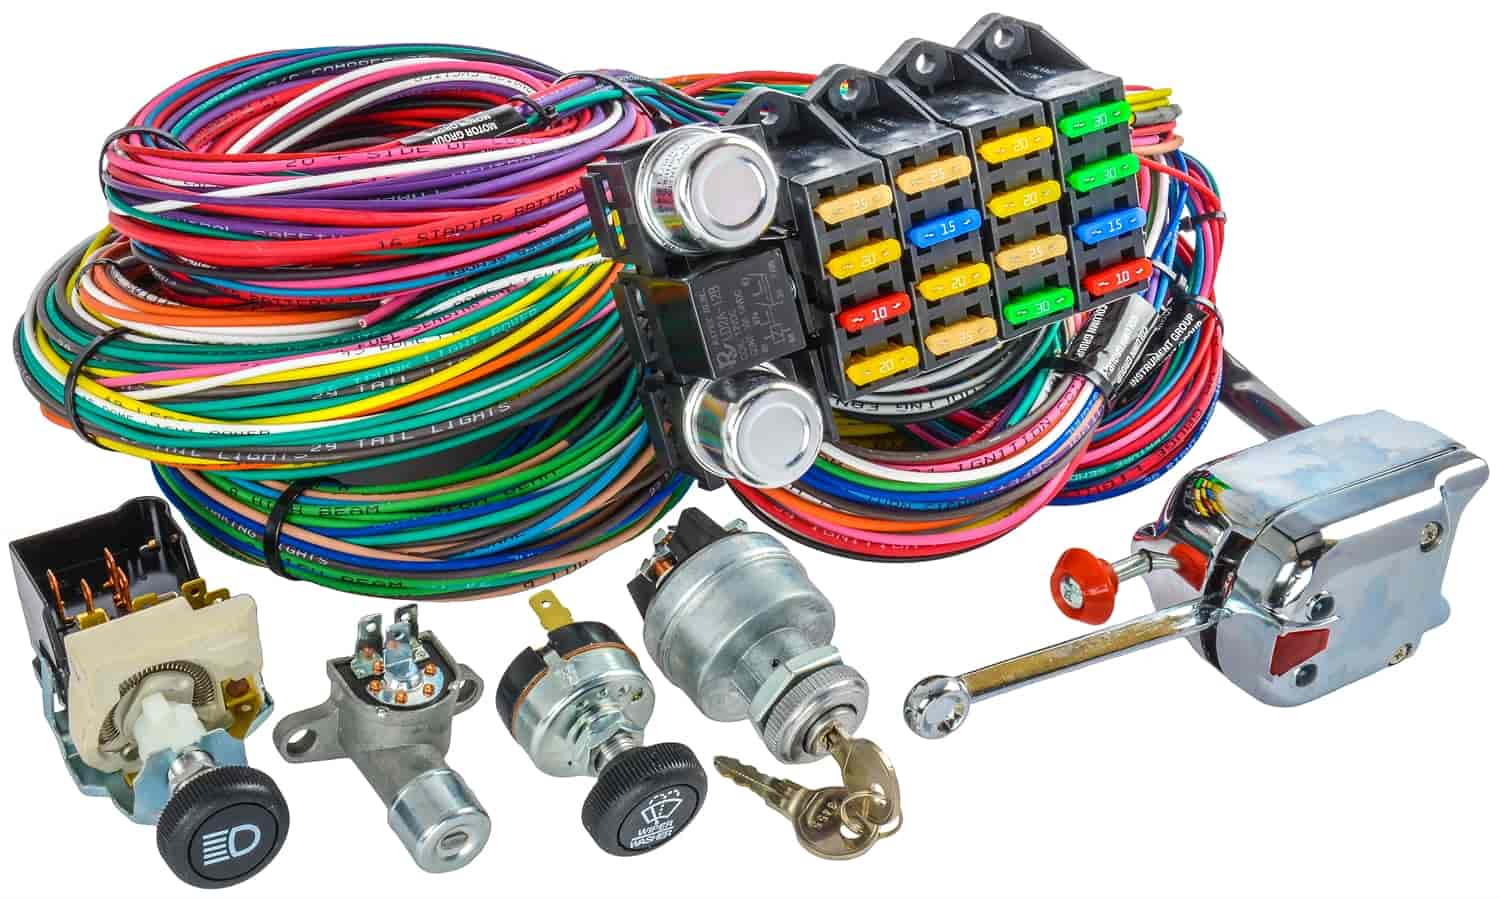 555 10405k jegs performance products 10405k universal wiring harness jegs universal wiring harness at reclaimingppi.co